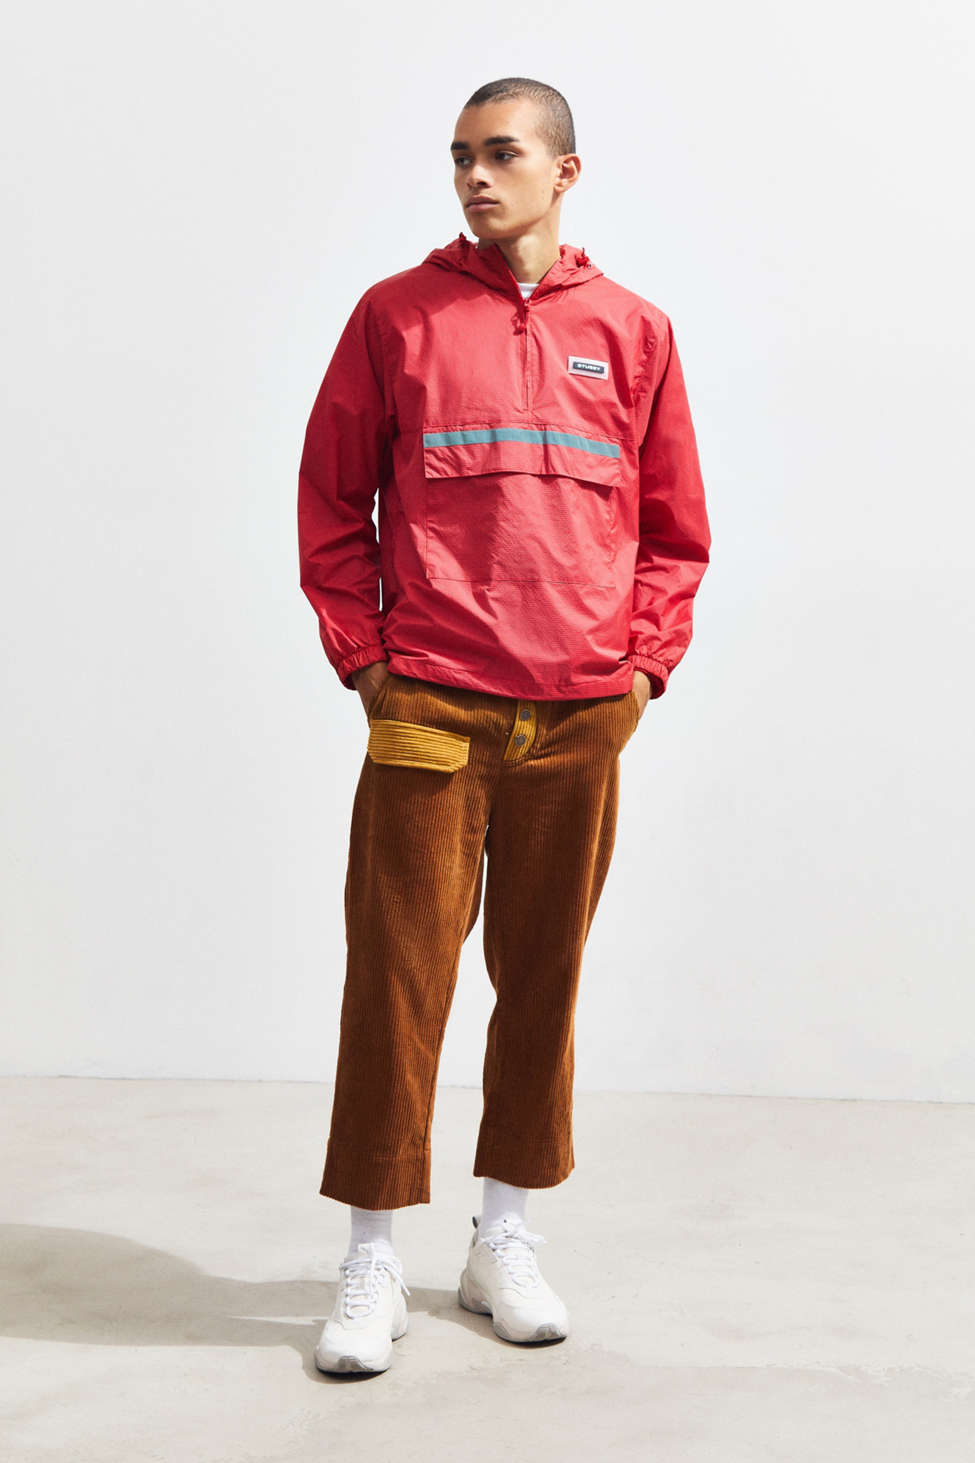 Fried Rice Roll Up Corduroy Pant by Fried Rice